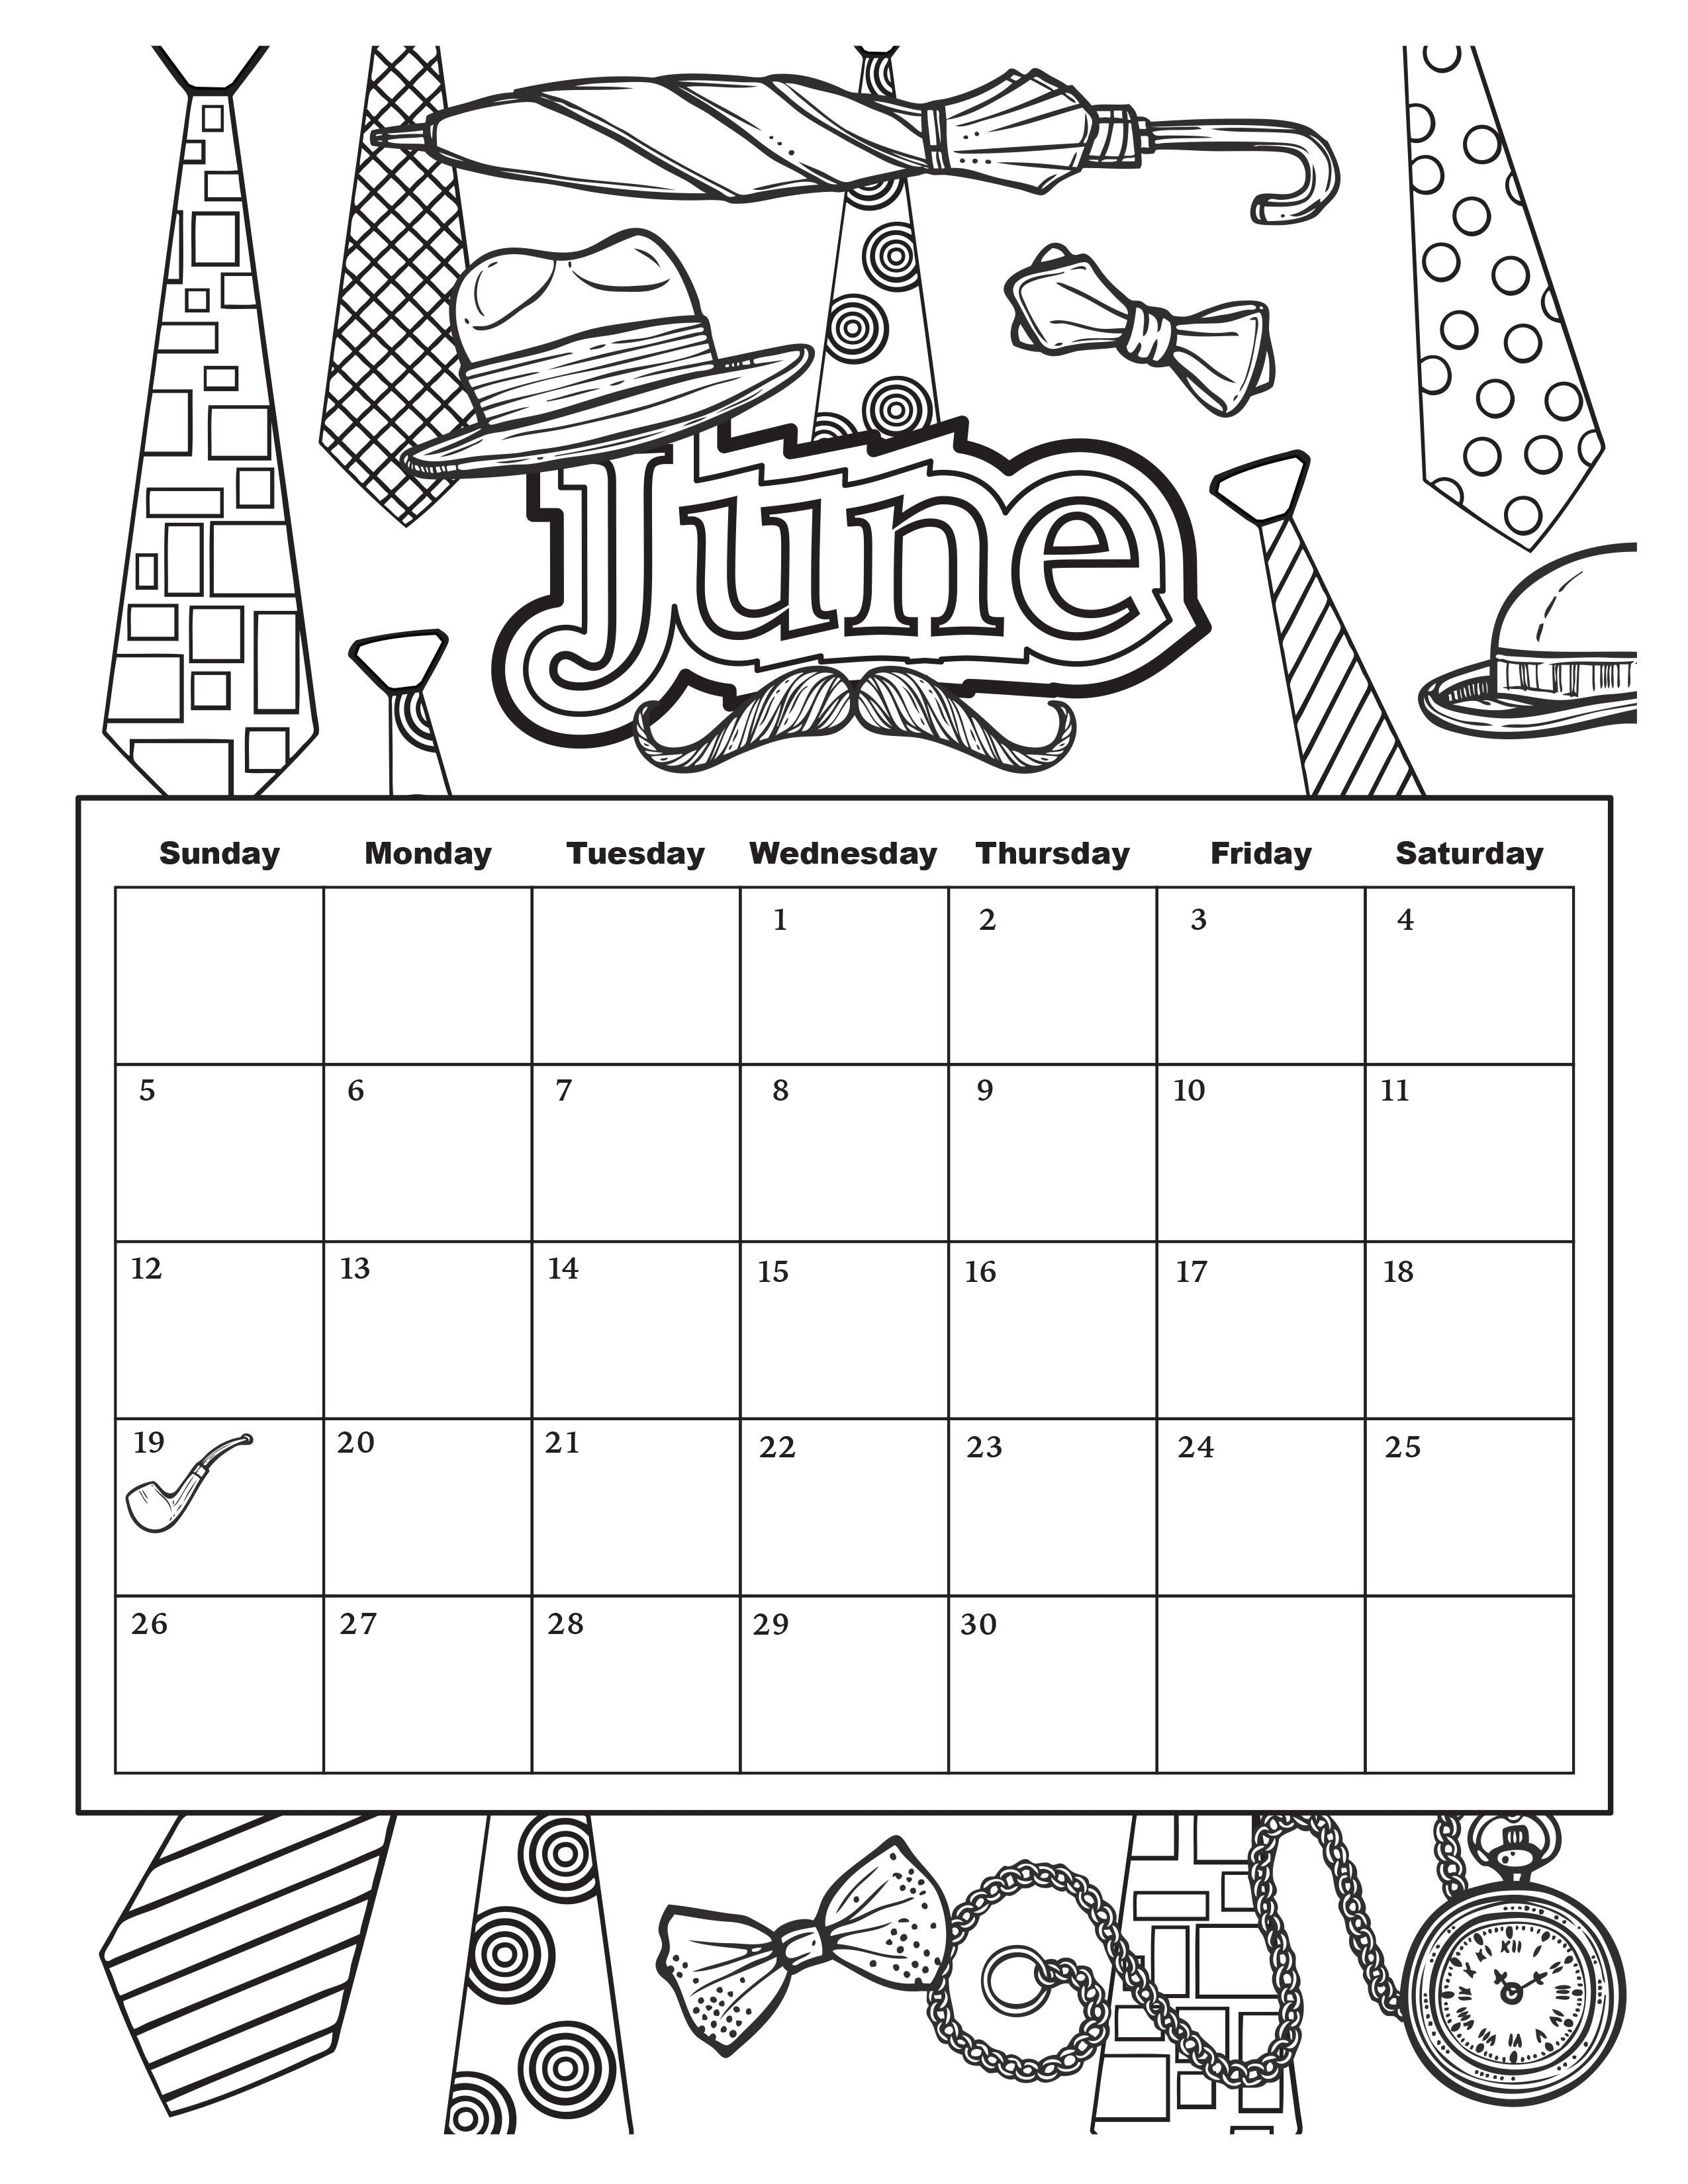 Coloring Pages October Calendar 9 Adults | Calendar Template Etknlik regarding Free Printable Adult October Calendar 2019 Coloring Sheets